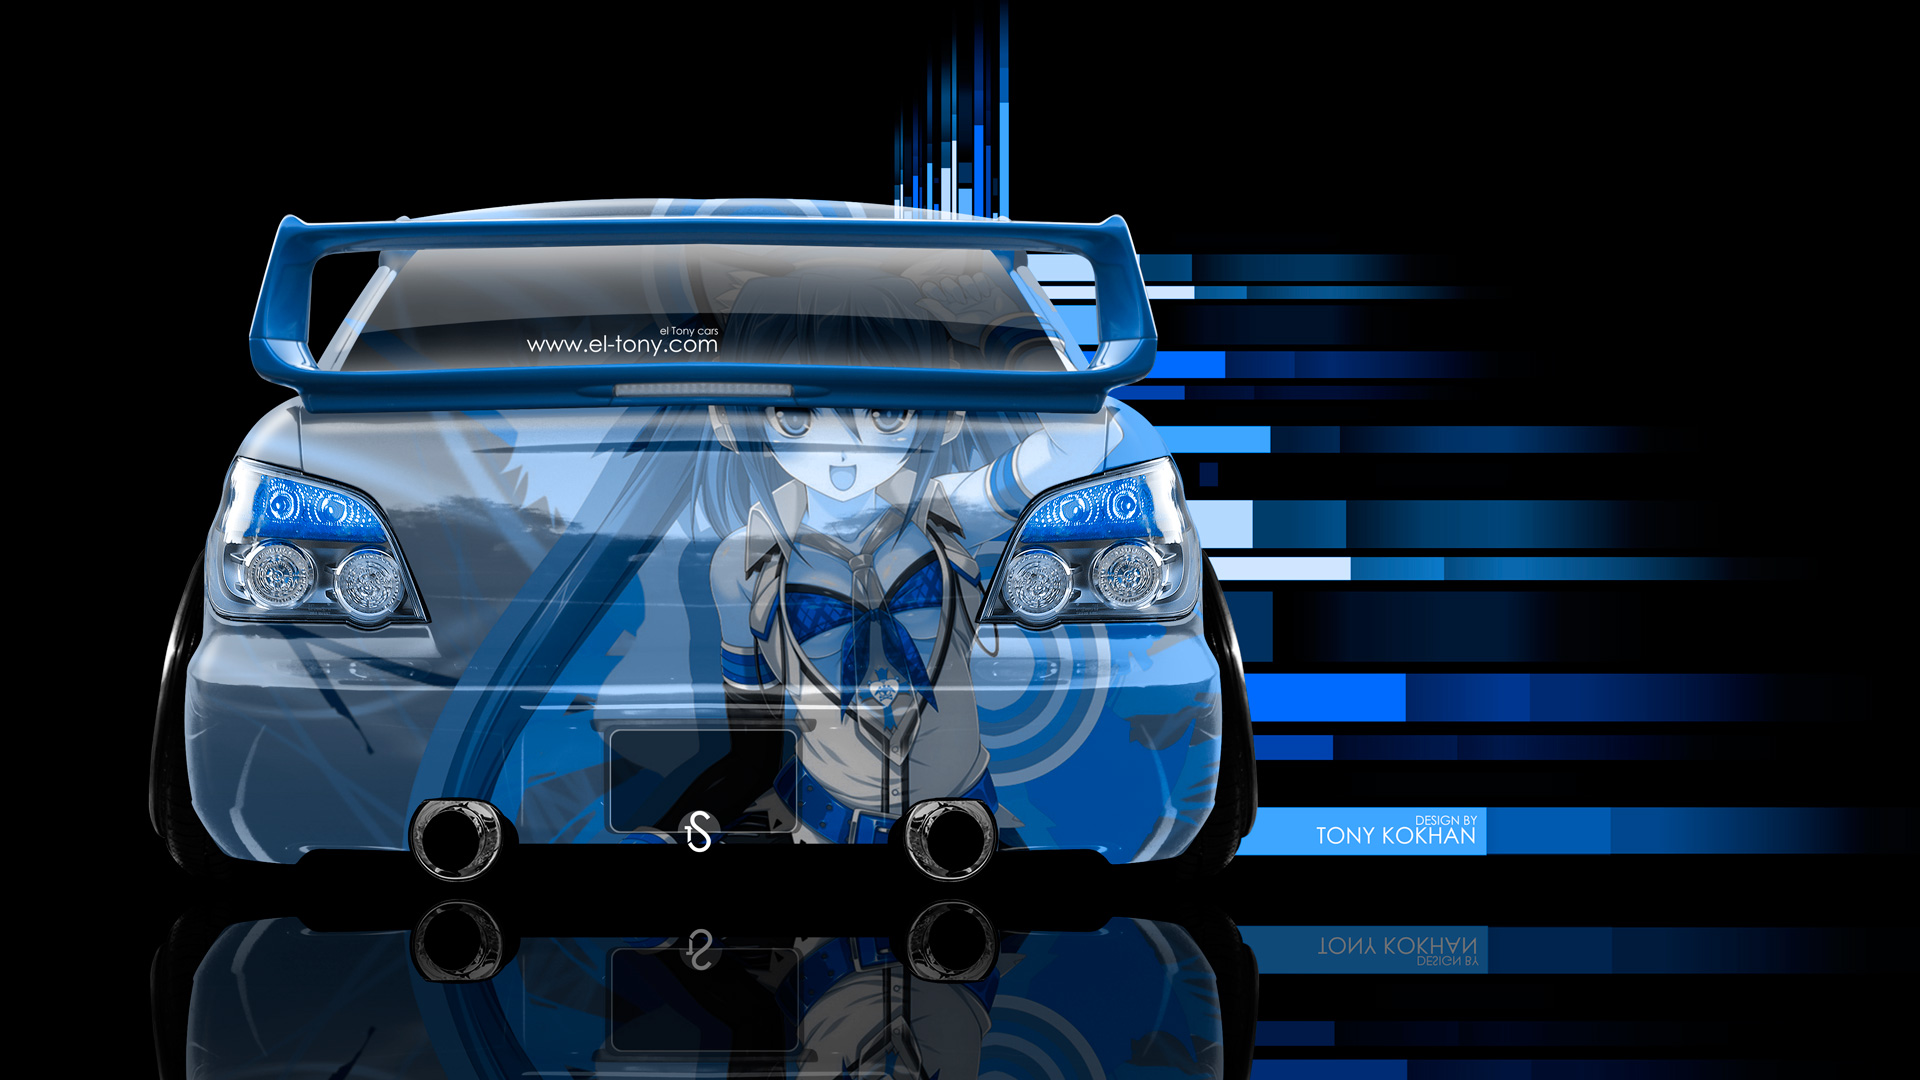 Wonderful ... Subaru Impreza WRX STI JDM Back Anime Aerography  ... Home Design Ideas